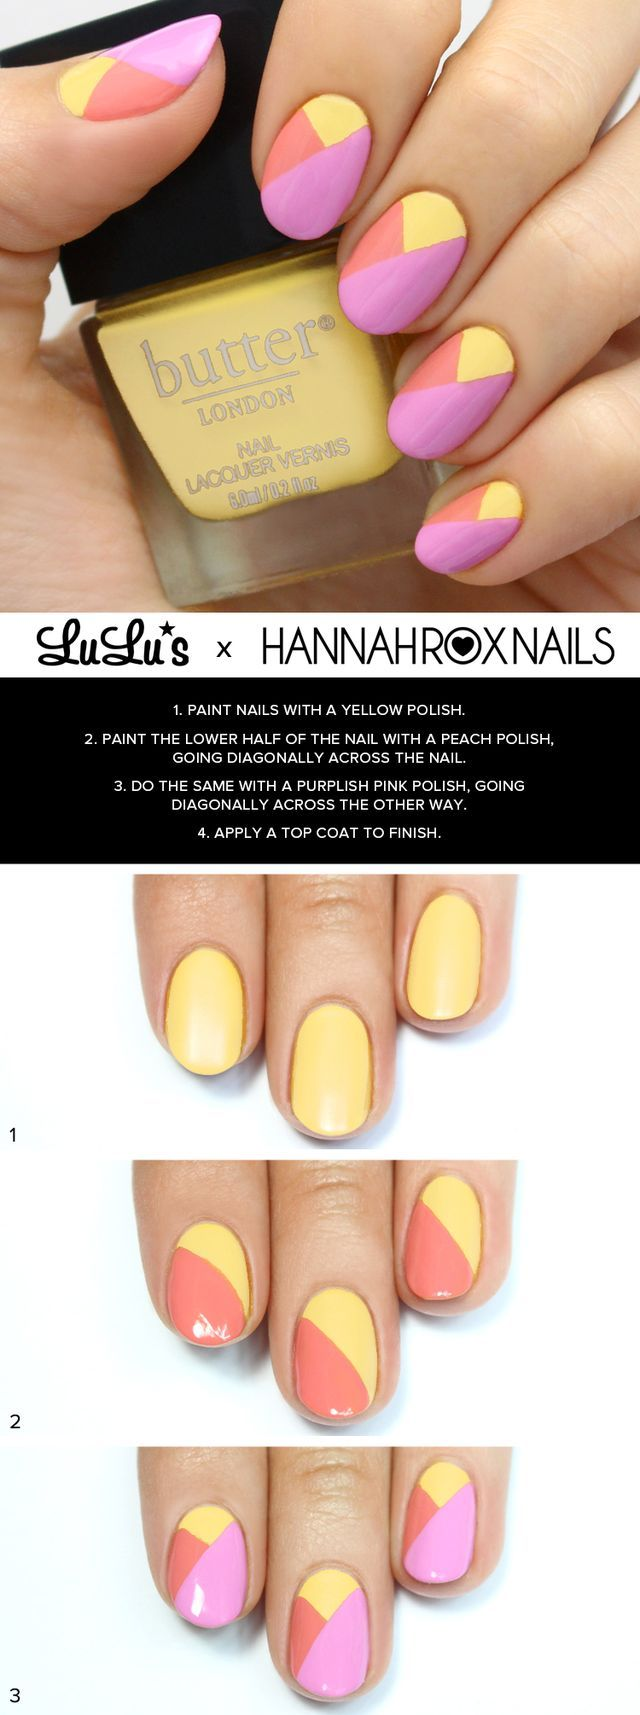 Grab your sunhat and cute new bikini, because this bright color block nail tutorial is ready for some fun in the sun! From poolside, music festivals, and every day i- between, we are swooning over thi